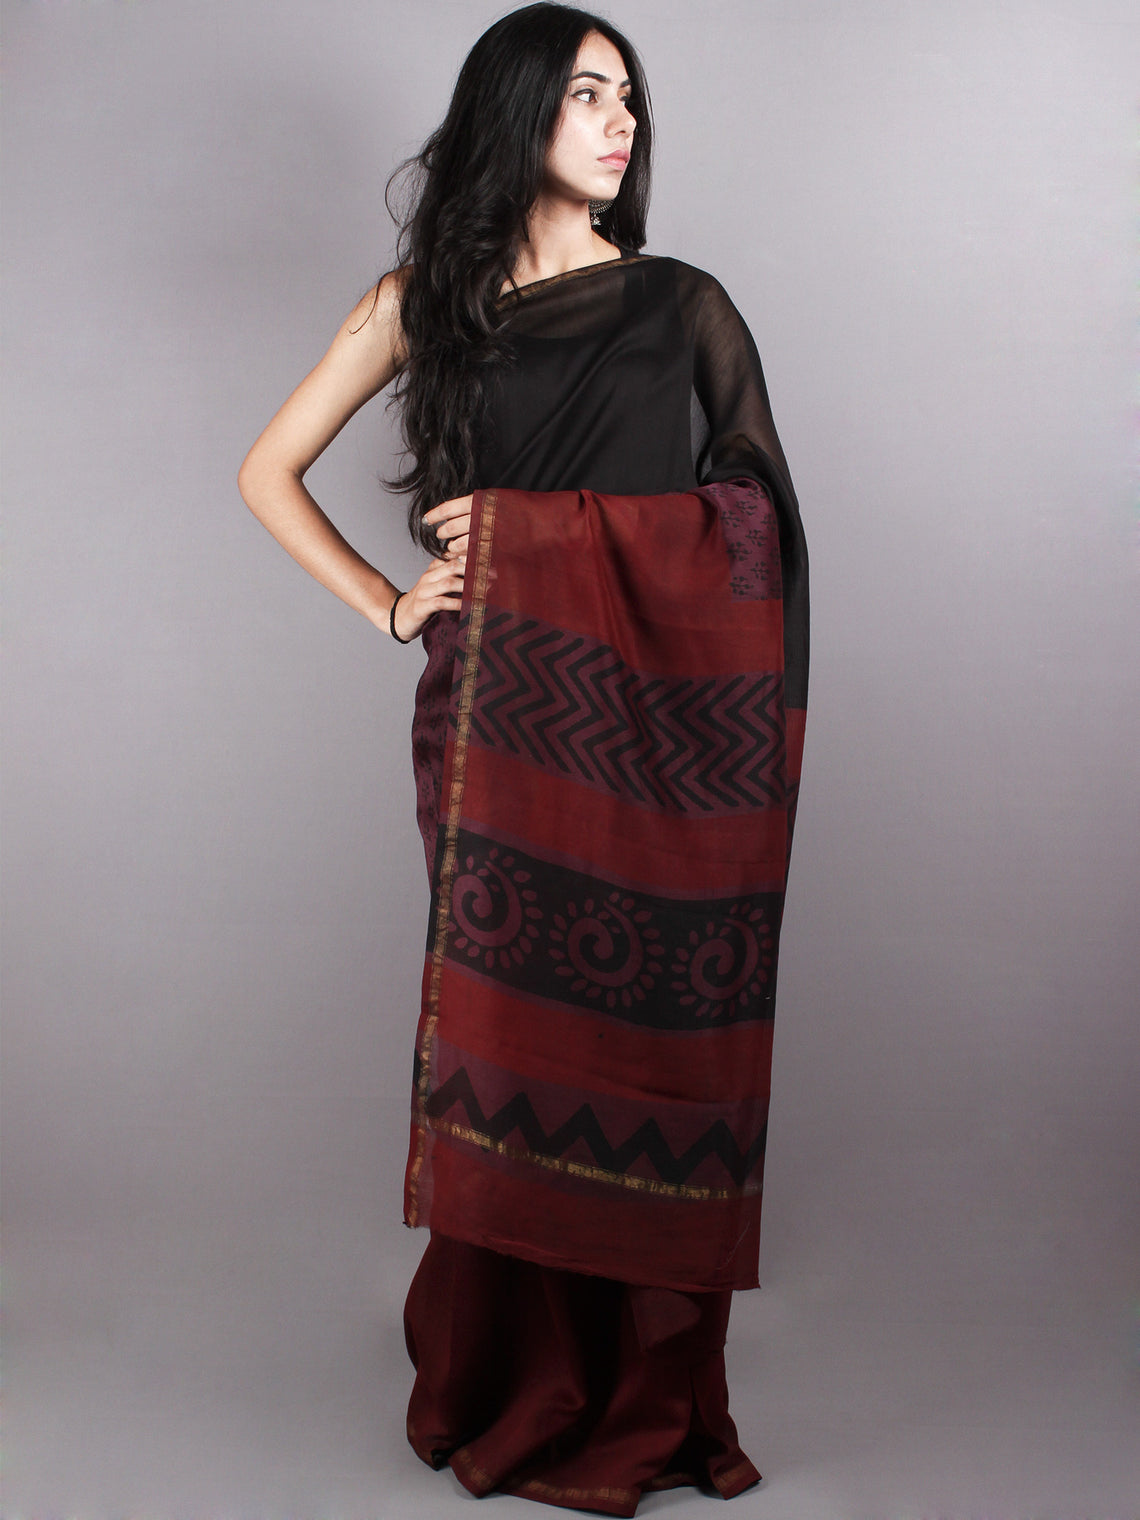 Black Mahroon Mono Chanderi  Hand Block Printed Saree with Zari Border - S0317216